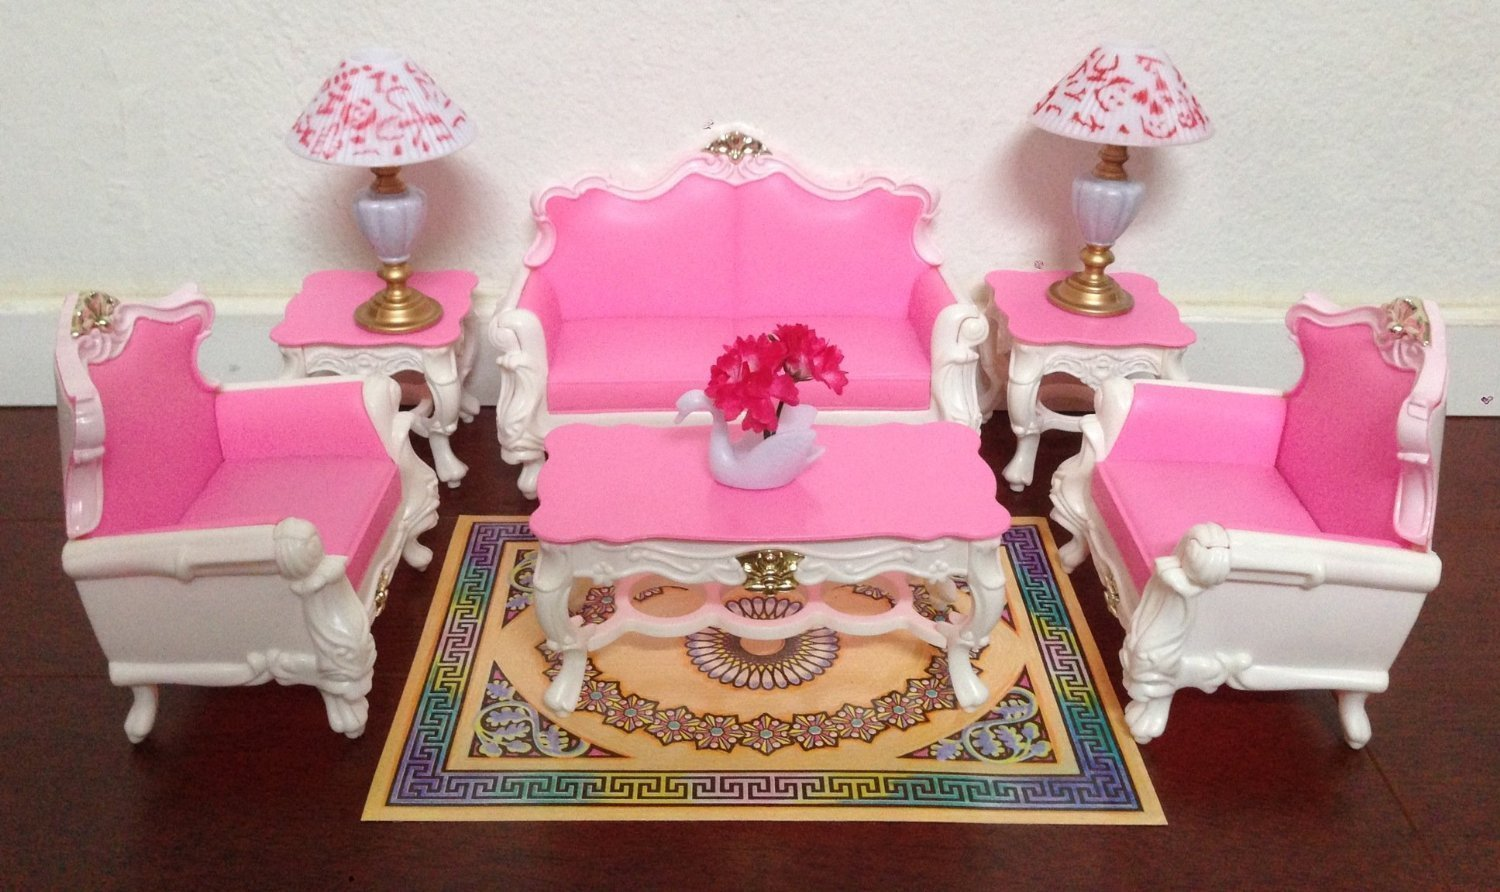 My Fancy Life Dollhouse Furniture - Deluxe Living Room Playset